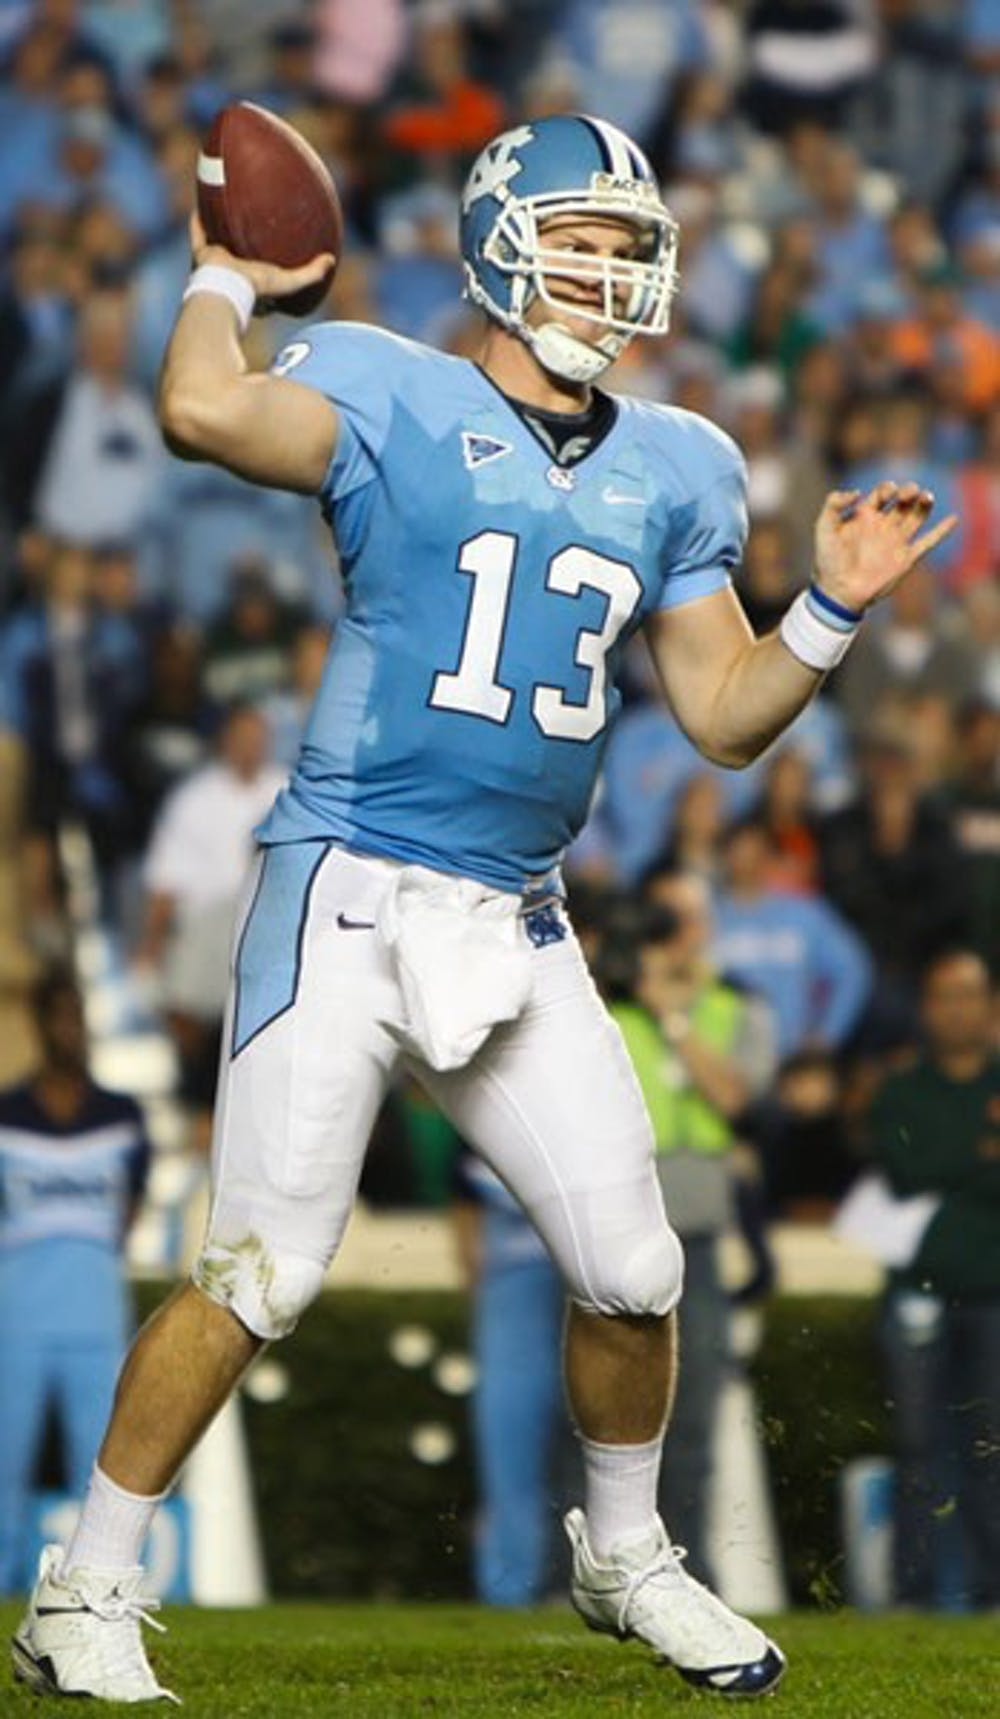 UNC quarterback T.J. Yates threw for 213 yards and one touchdown and did not turn the ball over against Miami. DTH/Phong Dinh